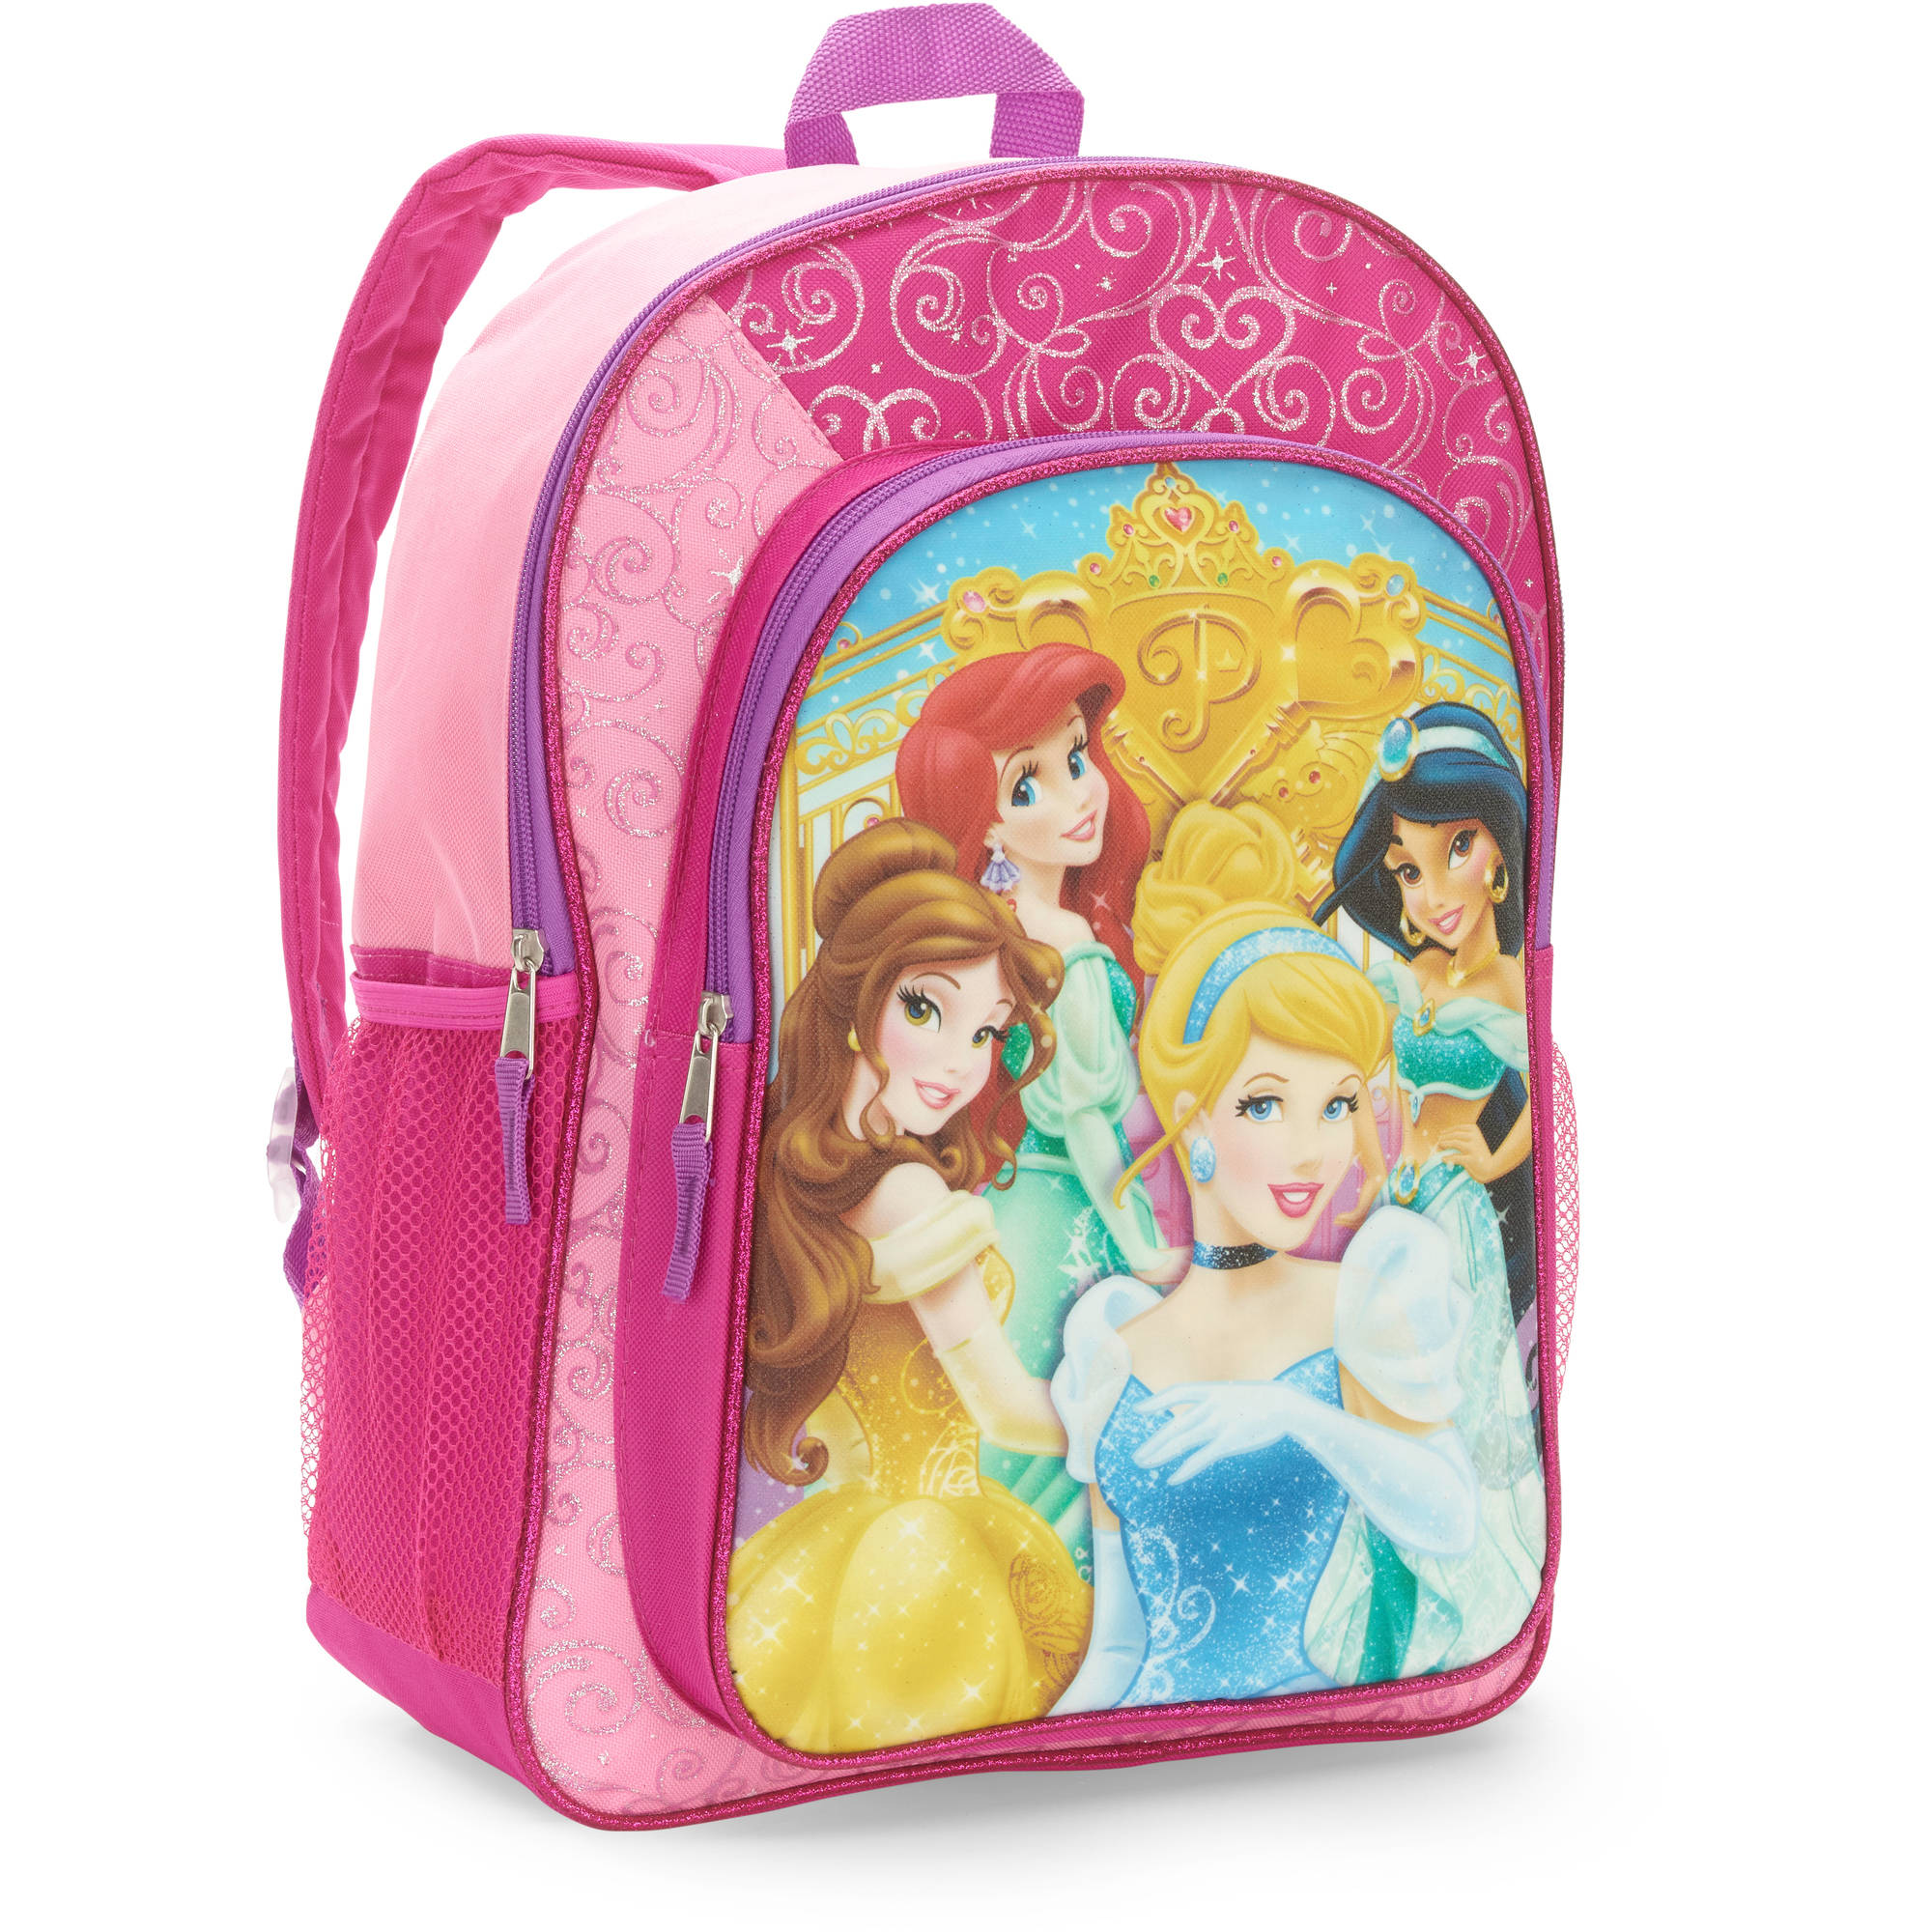 "Disney Princess Full Size 16"" Backpack"